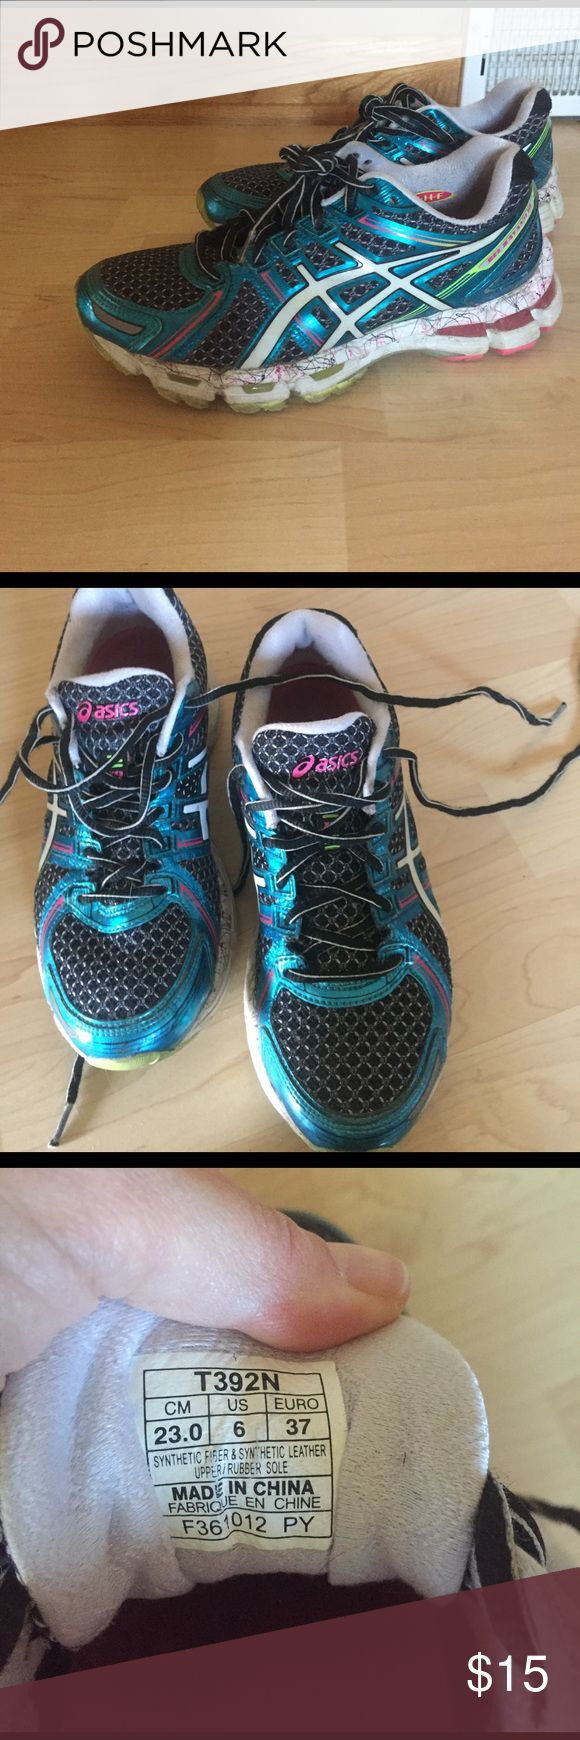 Asics gel kayano 19 running shoe Asics gel kayano 19 running shoe. Loved but respect. There are quite few miles left in them. I am a narrow 6- 5.5. I needed a tighter shoe. Otherwise a good running shoe for a 6 medium Asics Shoes Sneakers